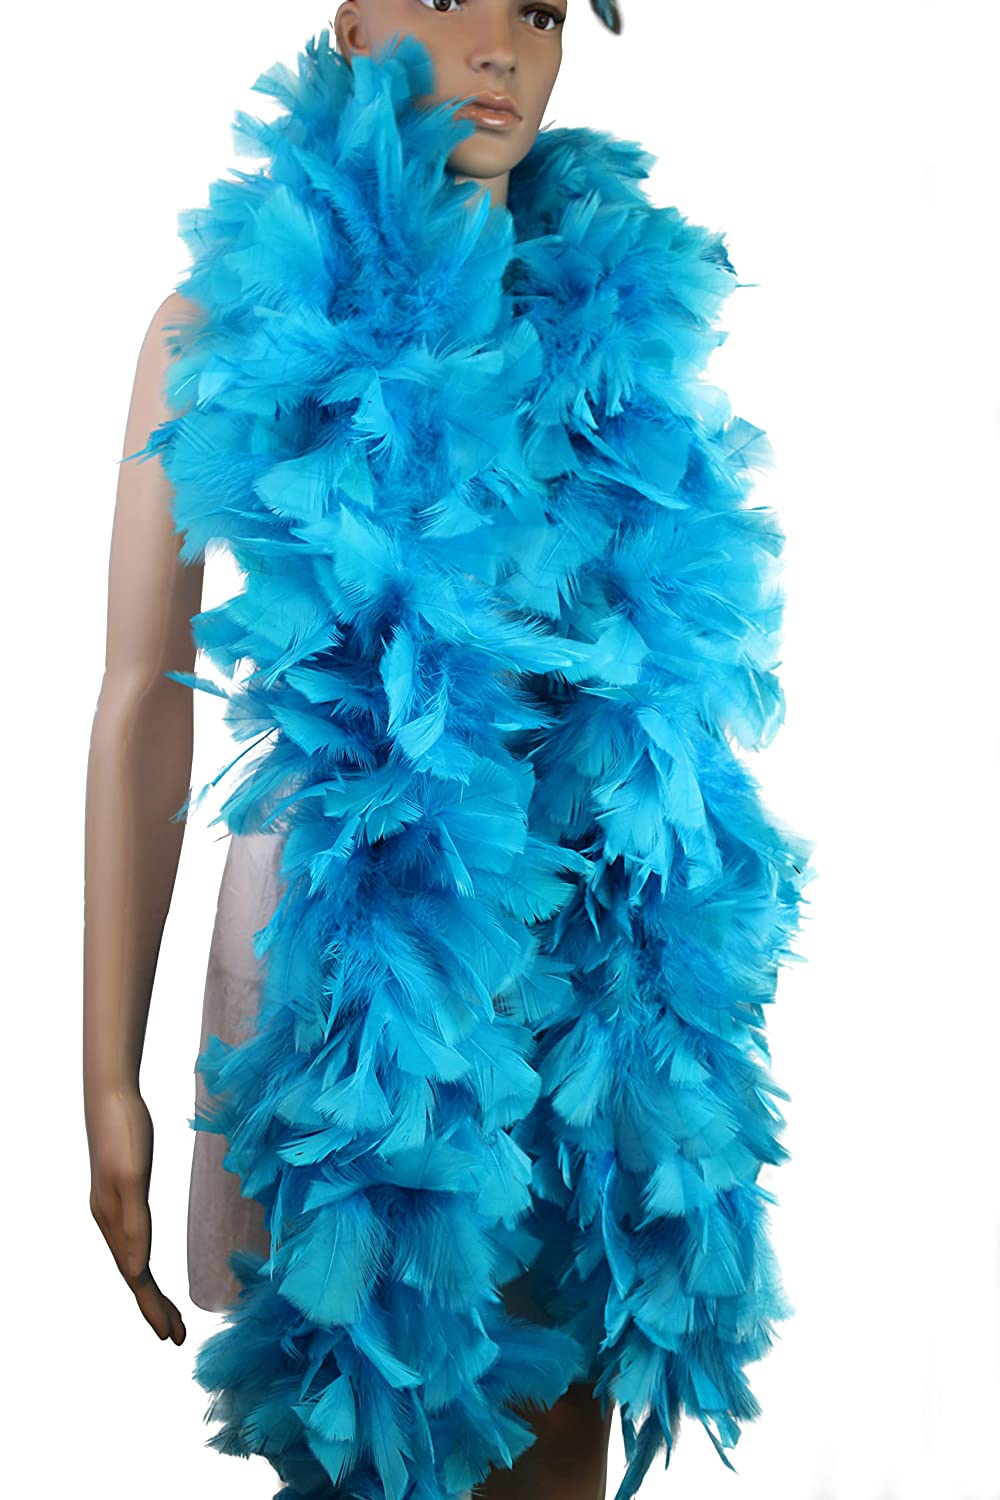 Flydream Feather 150 Gram Turkey Flat Large Feather Boa Good for Party, Dress Up, Halloween Costume, Decoration Black